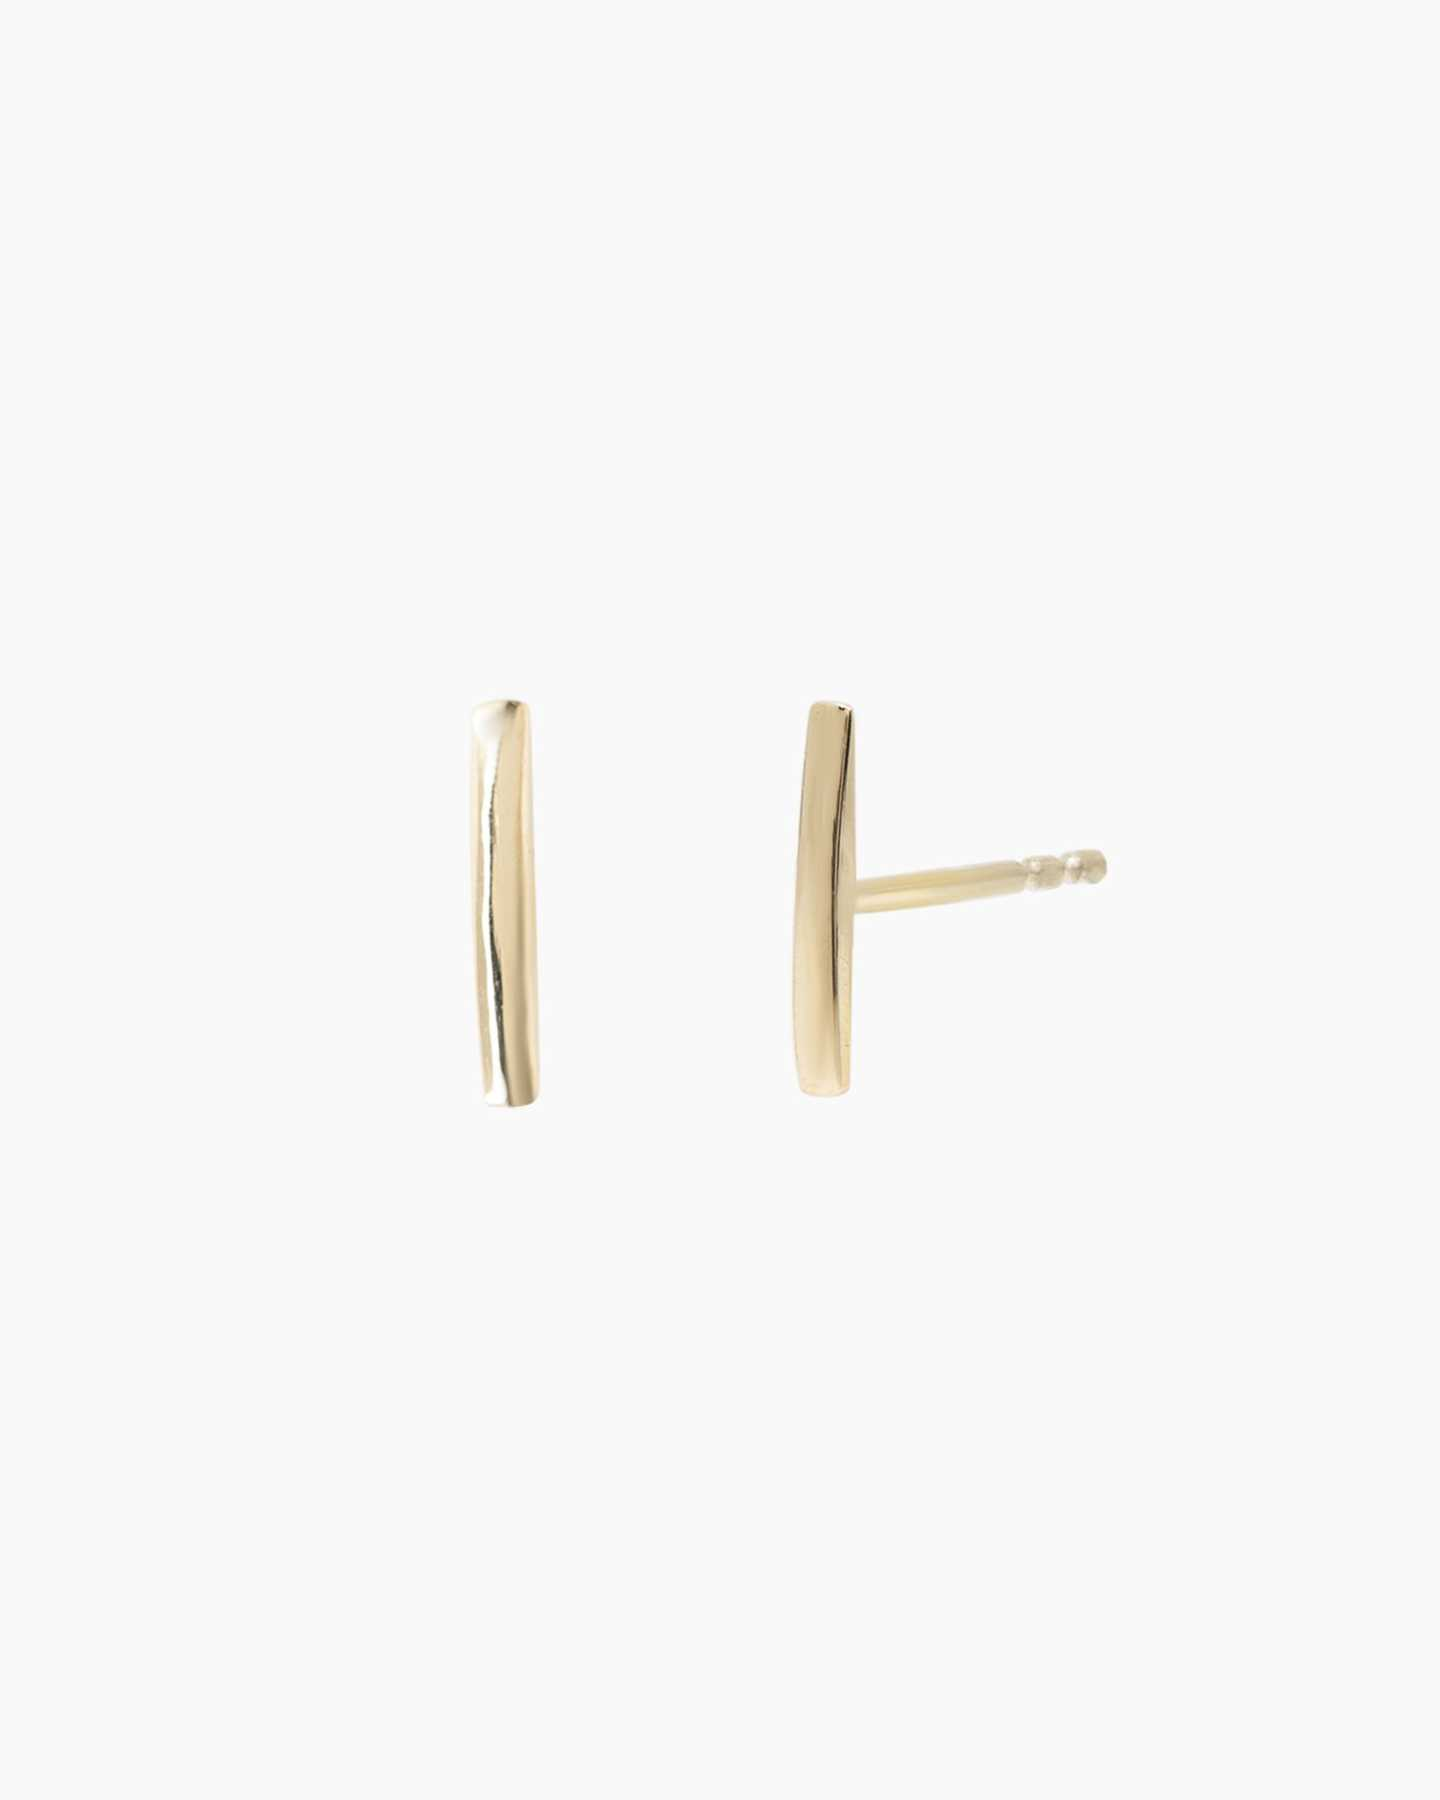 Pair With - 14k Gold Line Studs - Yellow Gold